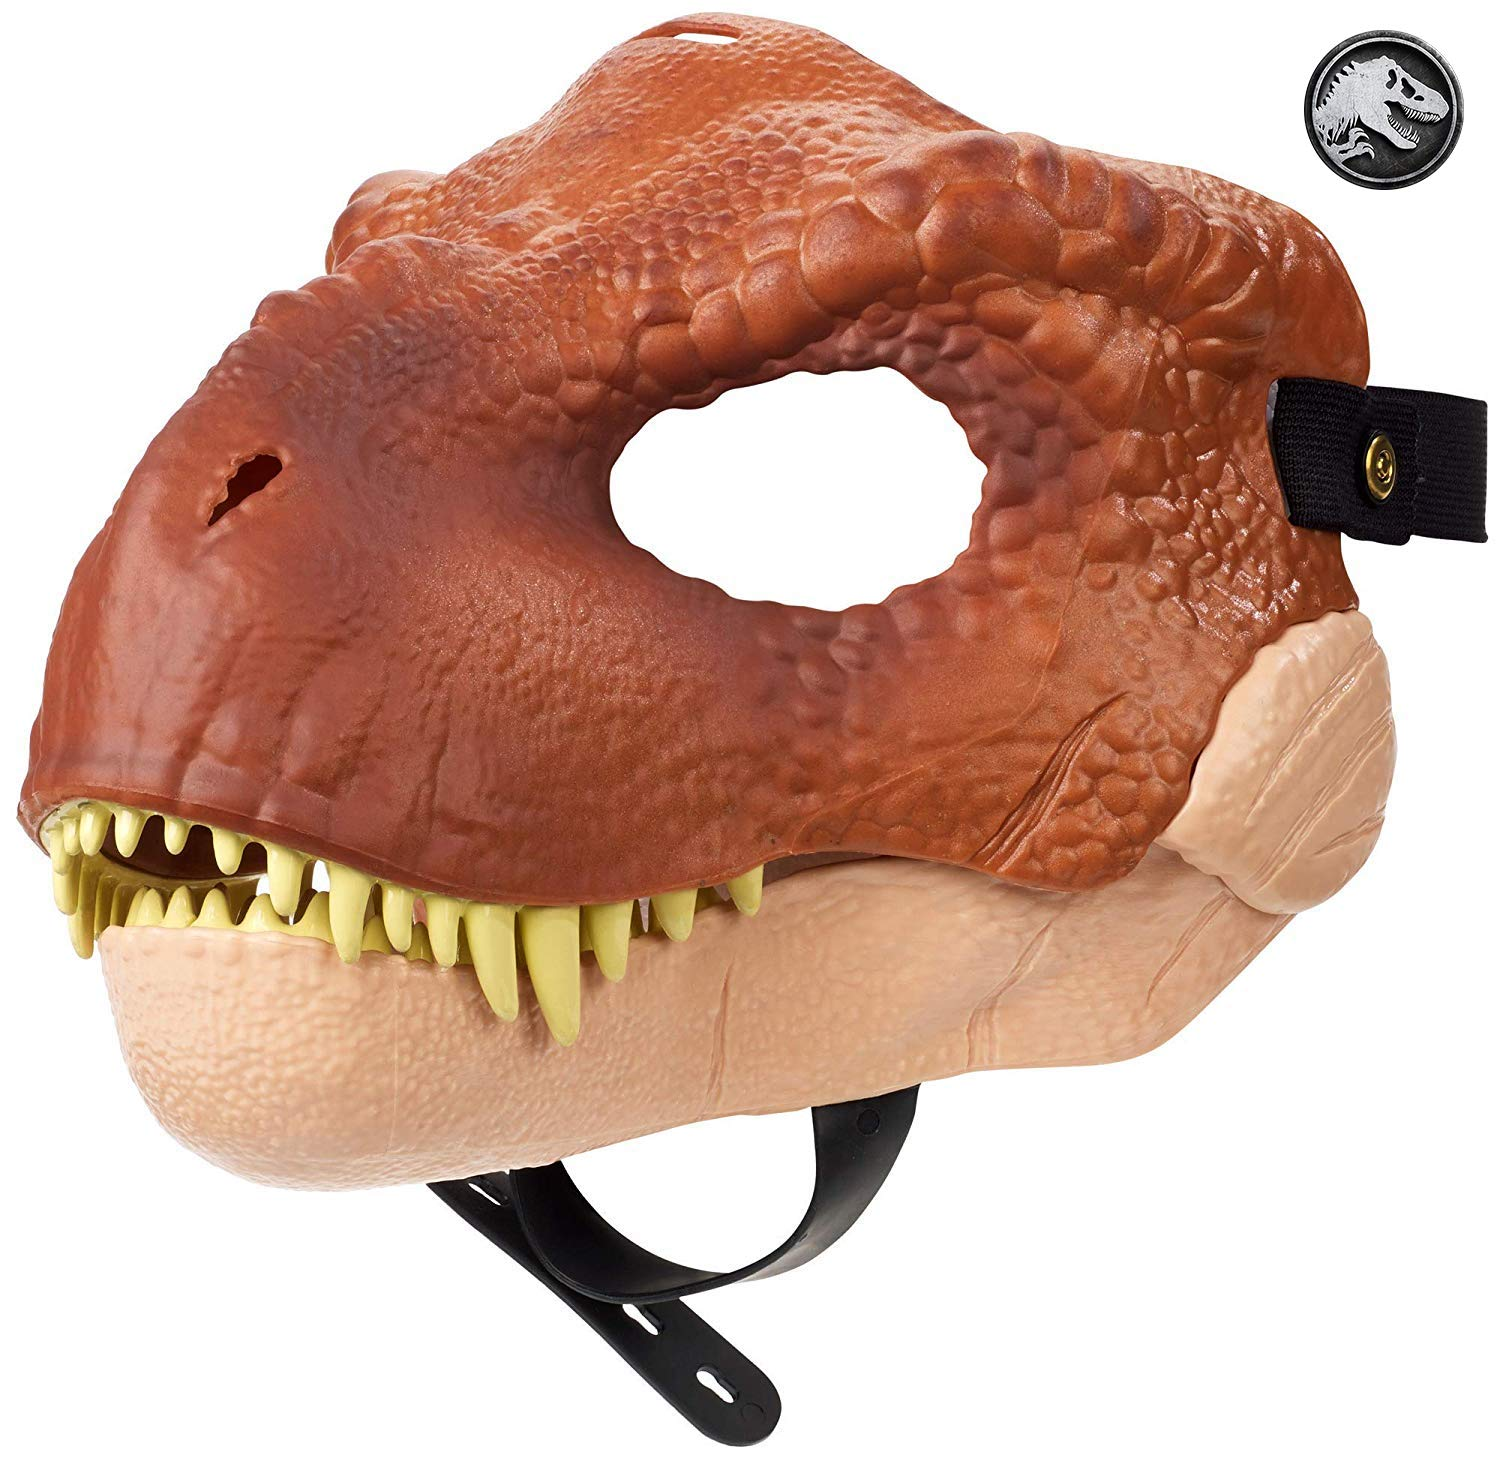 Jurassic World Tyrannosaurus Rex Mask by Jurassic World Toys